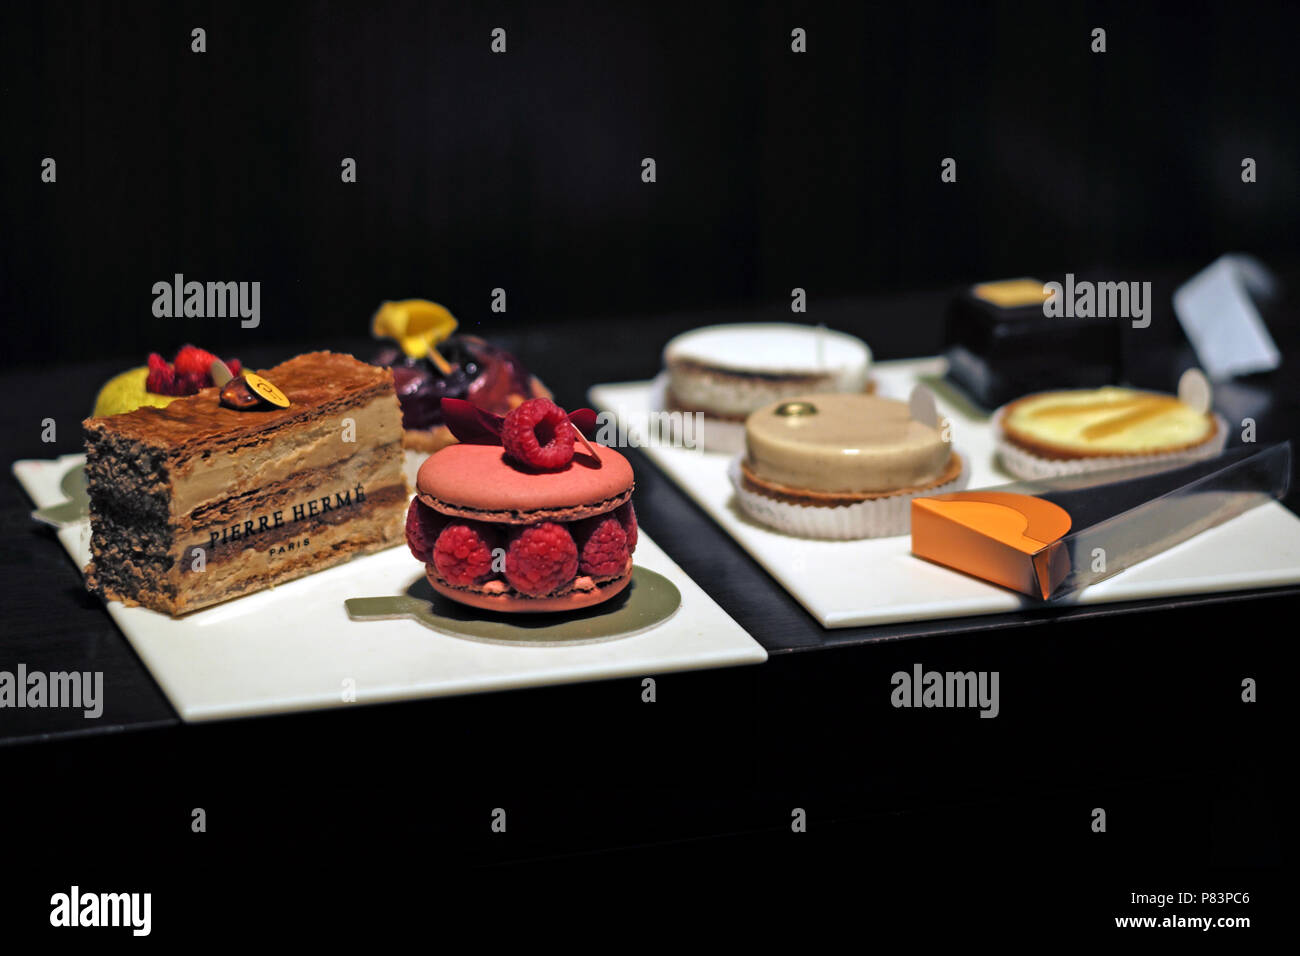 Variety of fresh fruit cakes and desserts, Paris, France, Europe - Stock Image